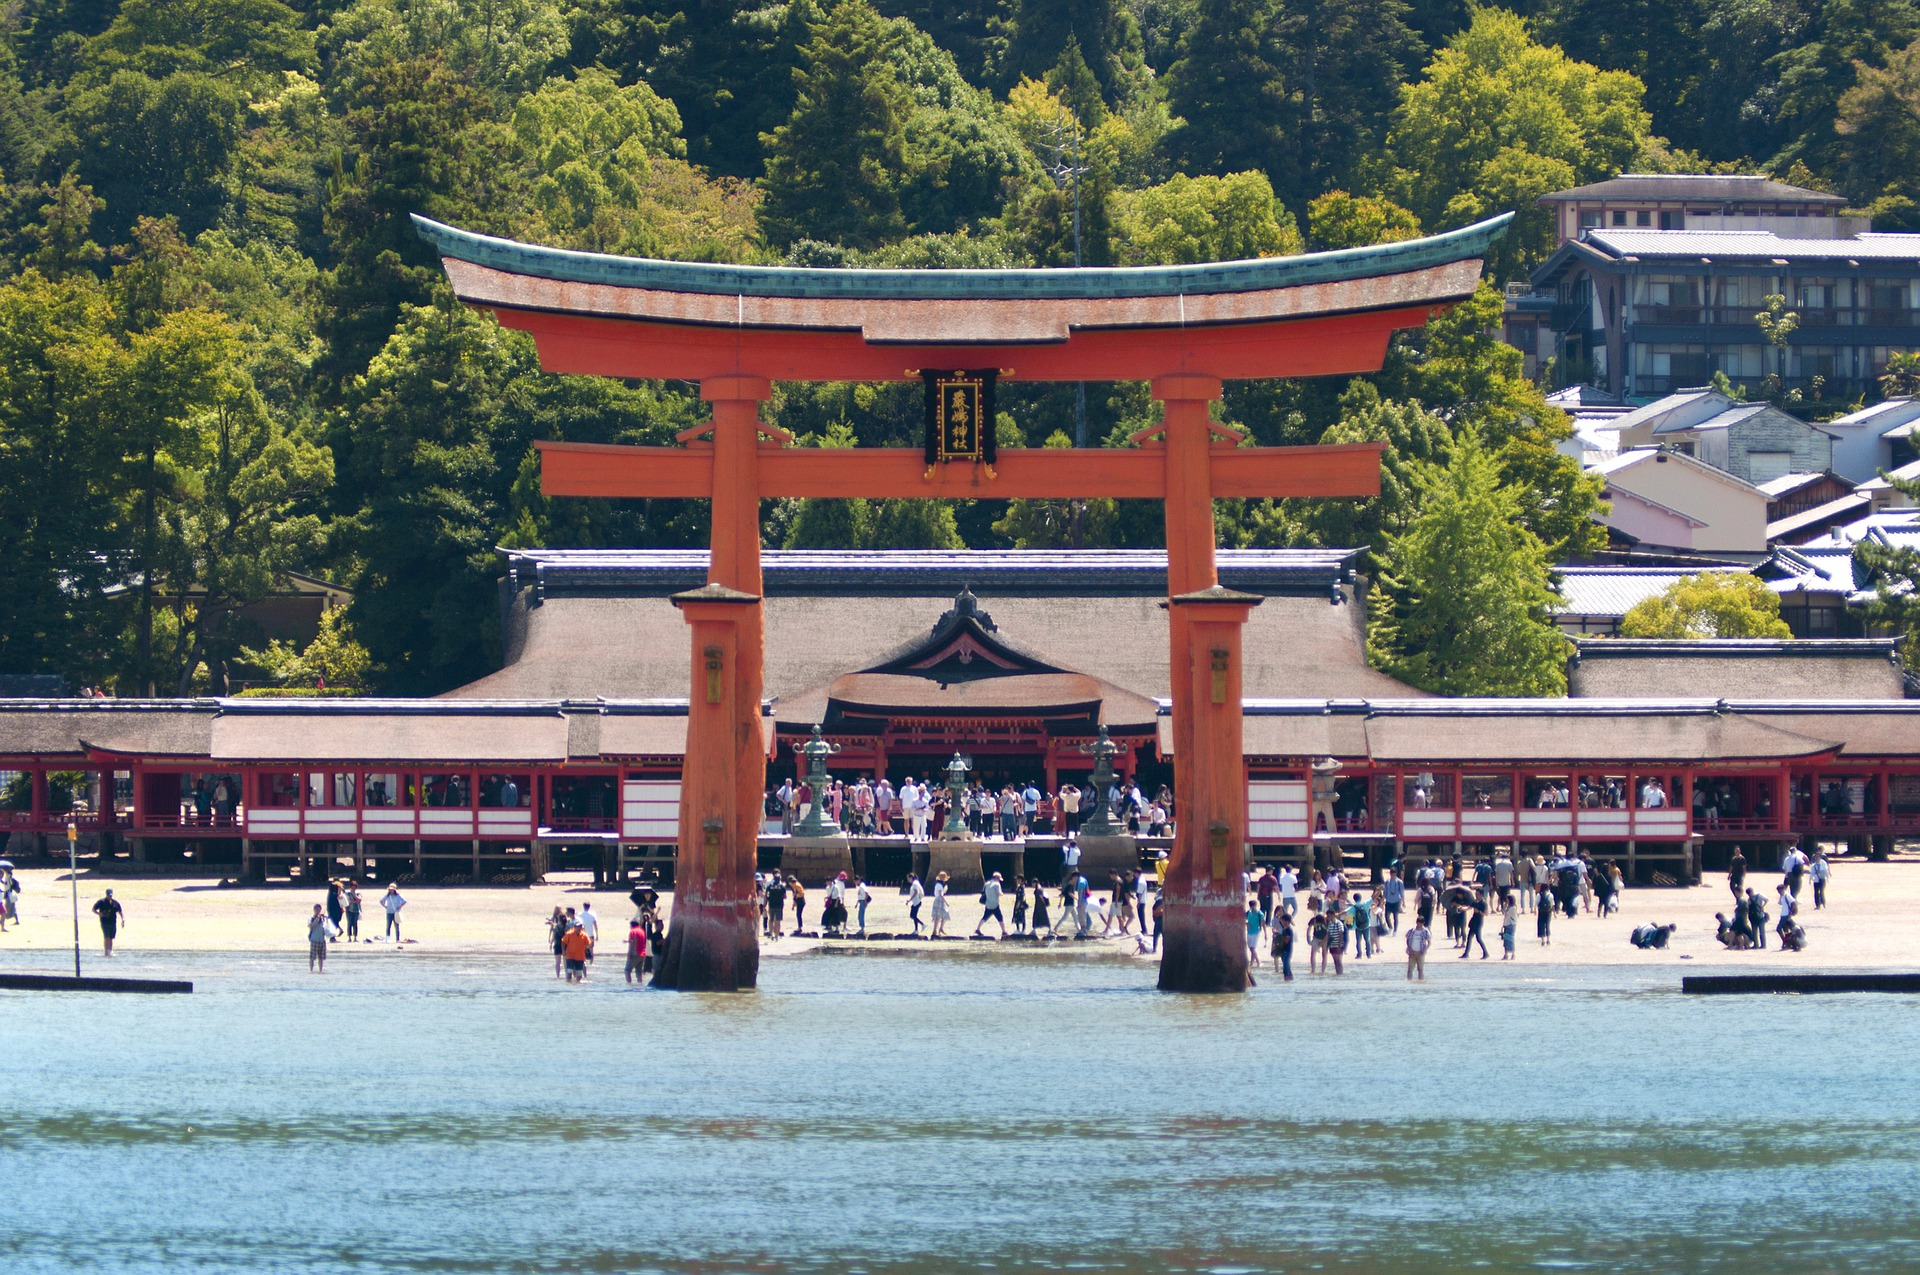 The great torii gate